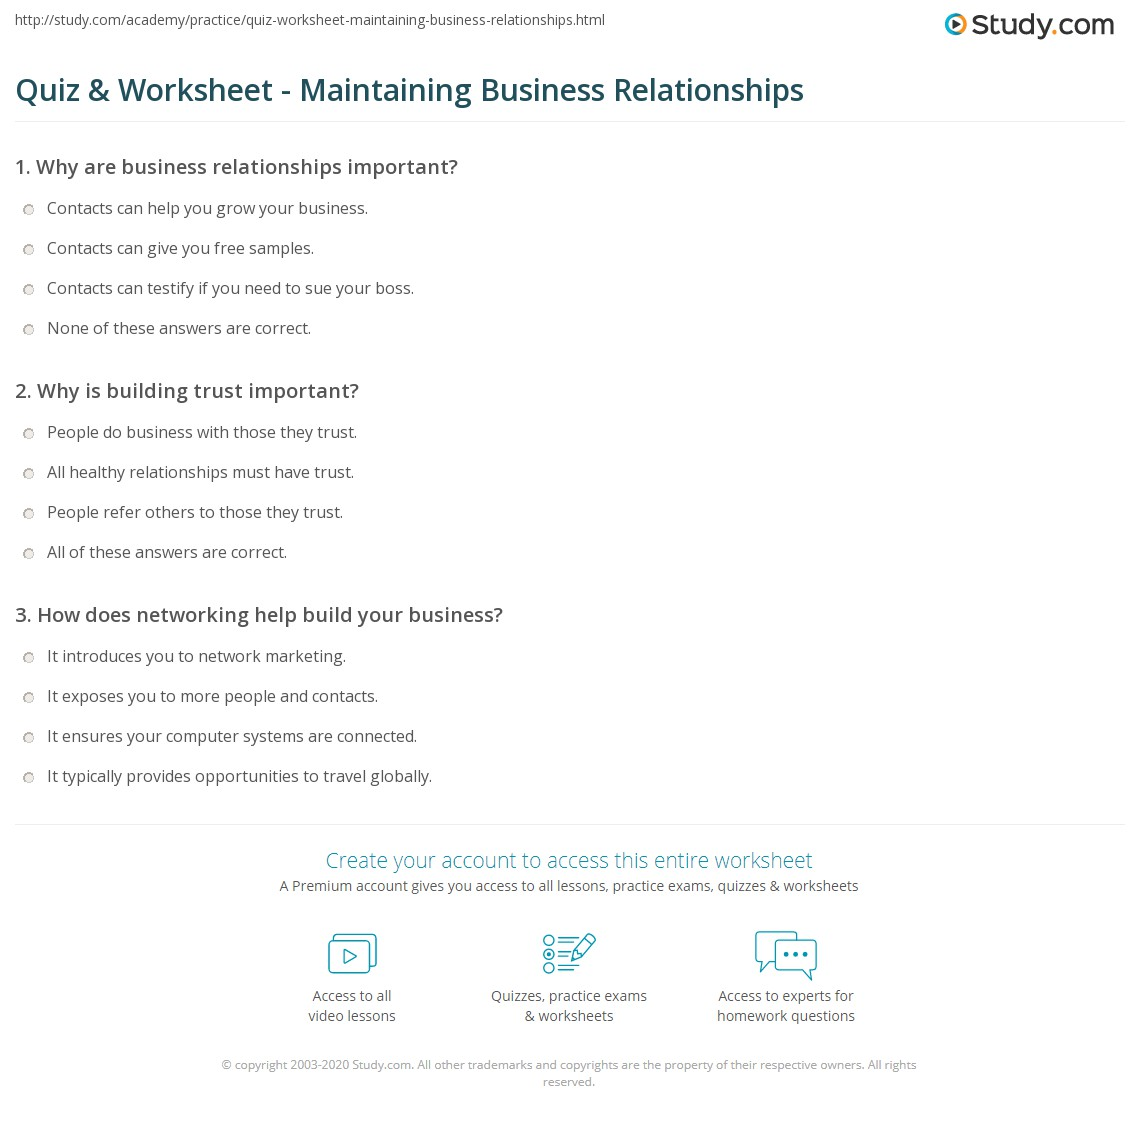 Worksheets Building Healthy Relationships Worksheet building healthy relationships worksheet intrepidpath quiz maintaining business study relationship shared qualities